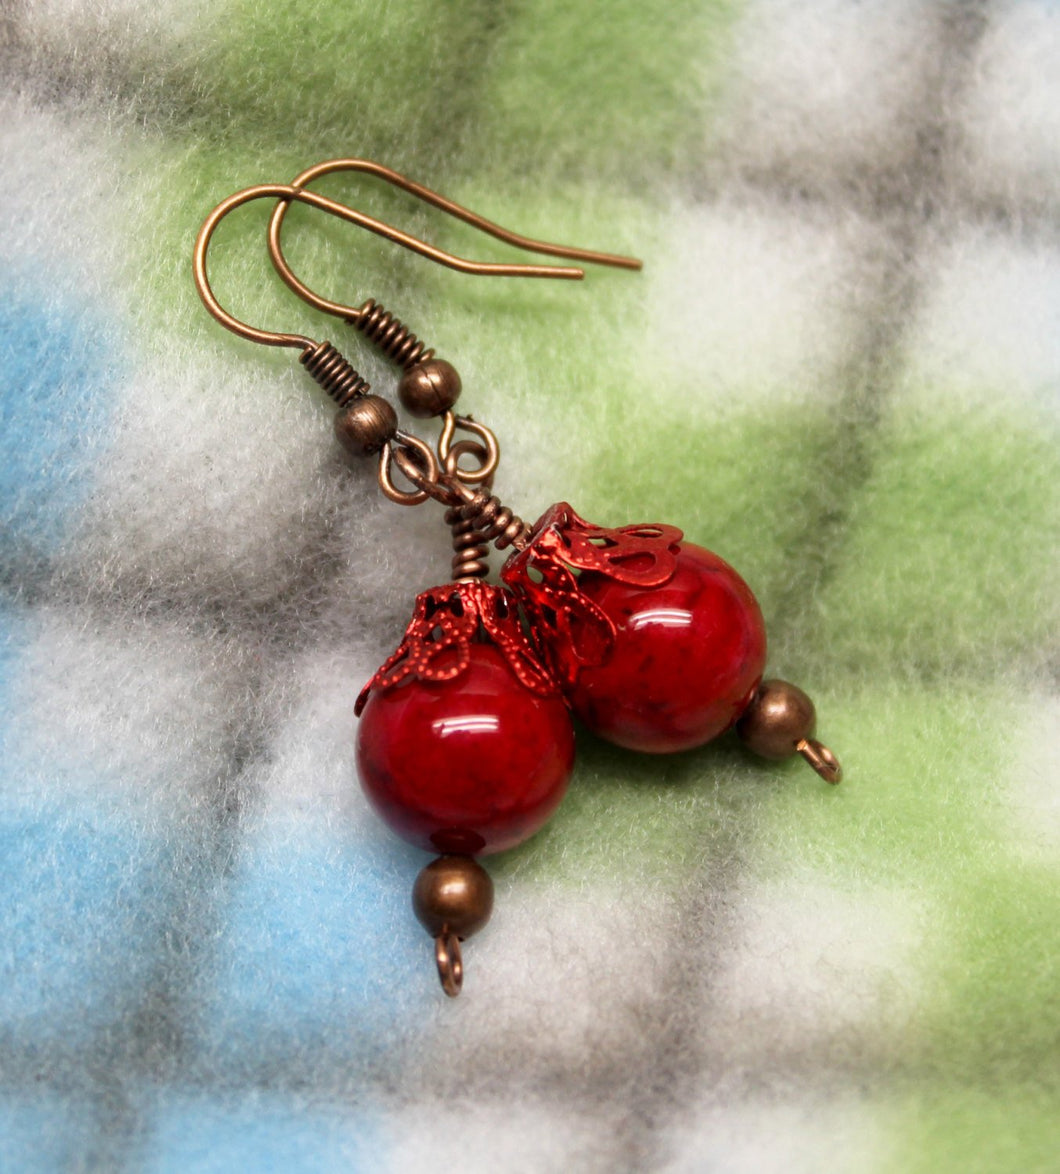 red stone bead earrings,red stone beads,red bead earrings,red stones,antique copper earrings, antique copper,women,teen,Christmas,gift